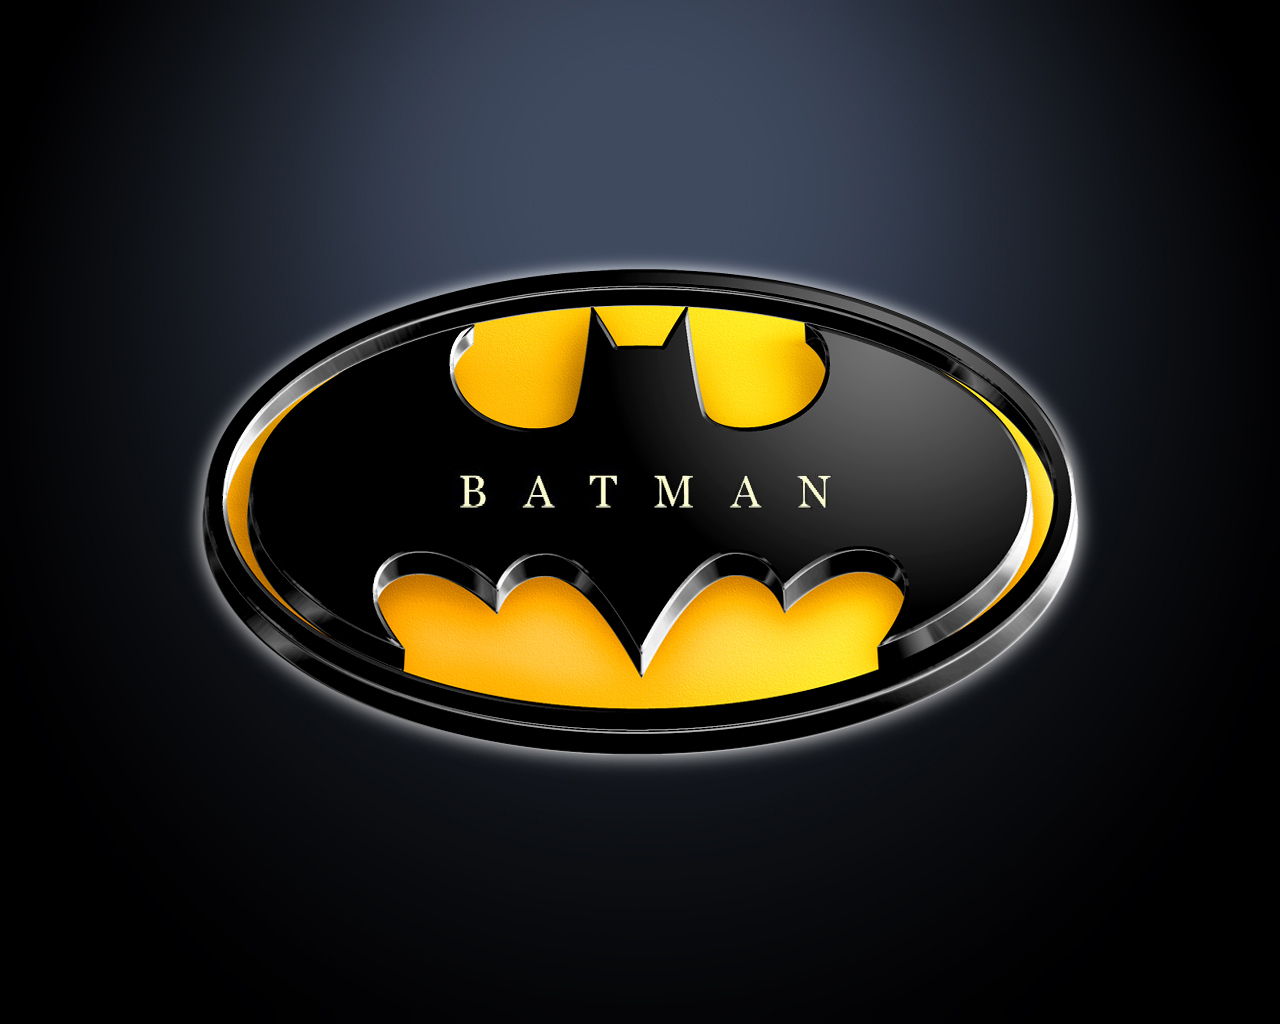 Batman images batman logo hd wallpaper and background Batman symbol